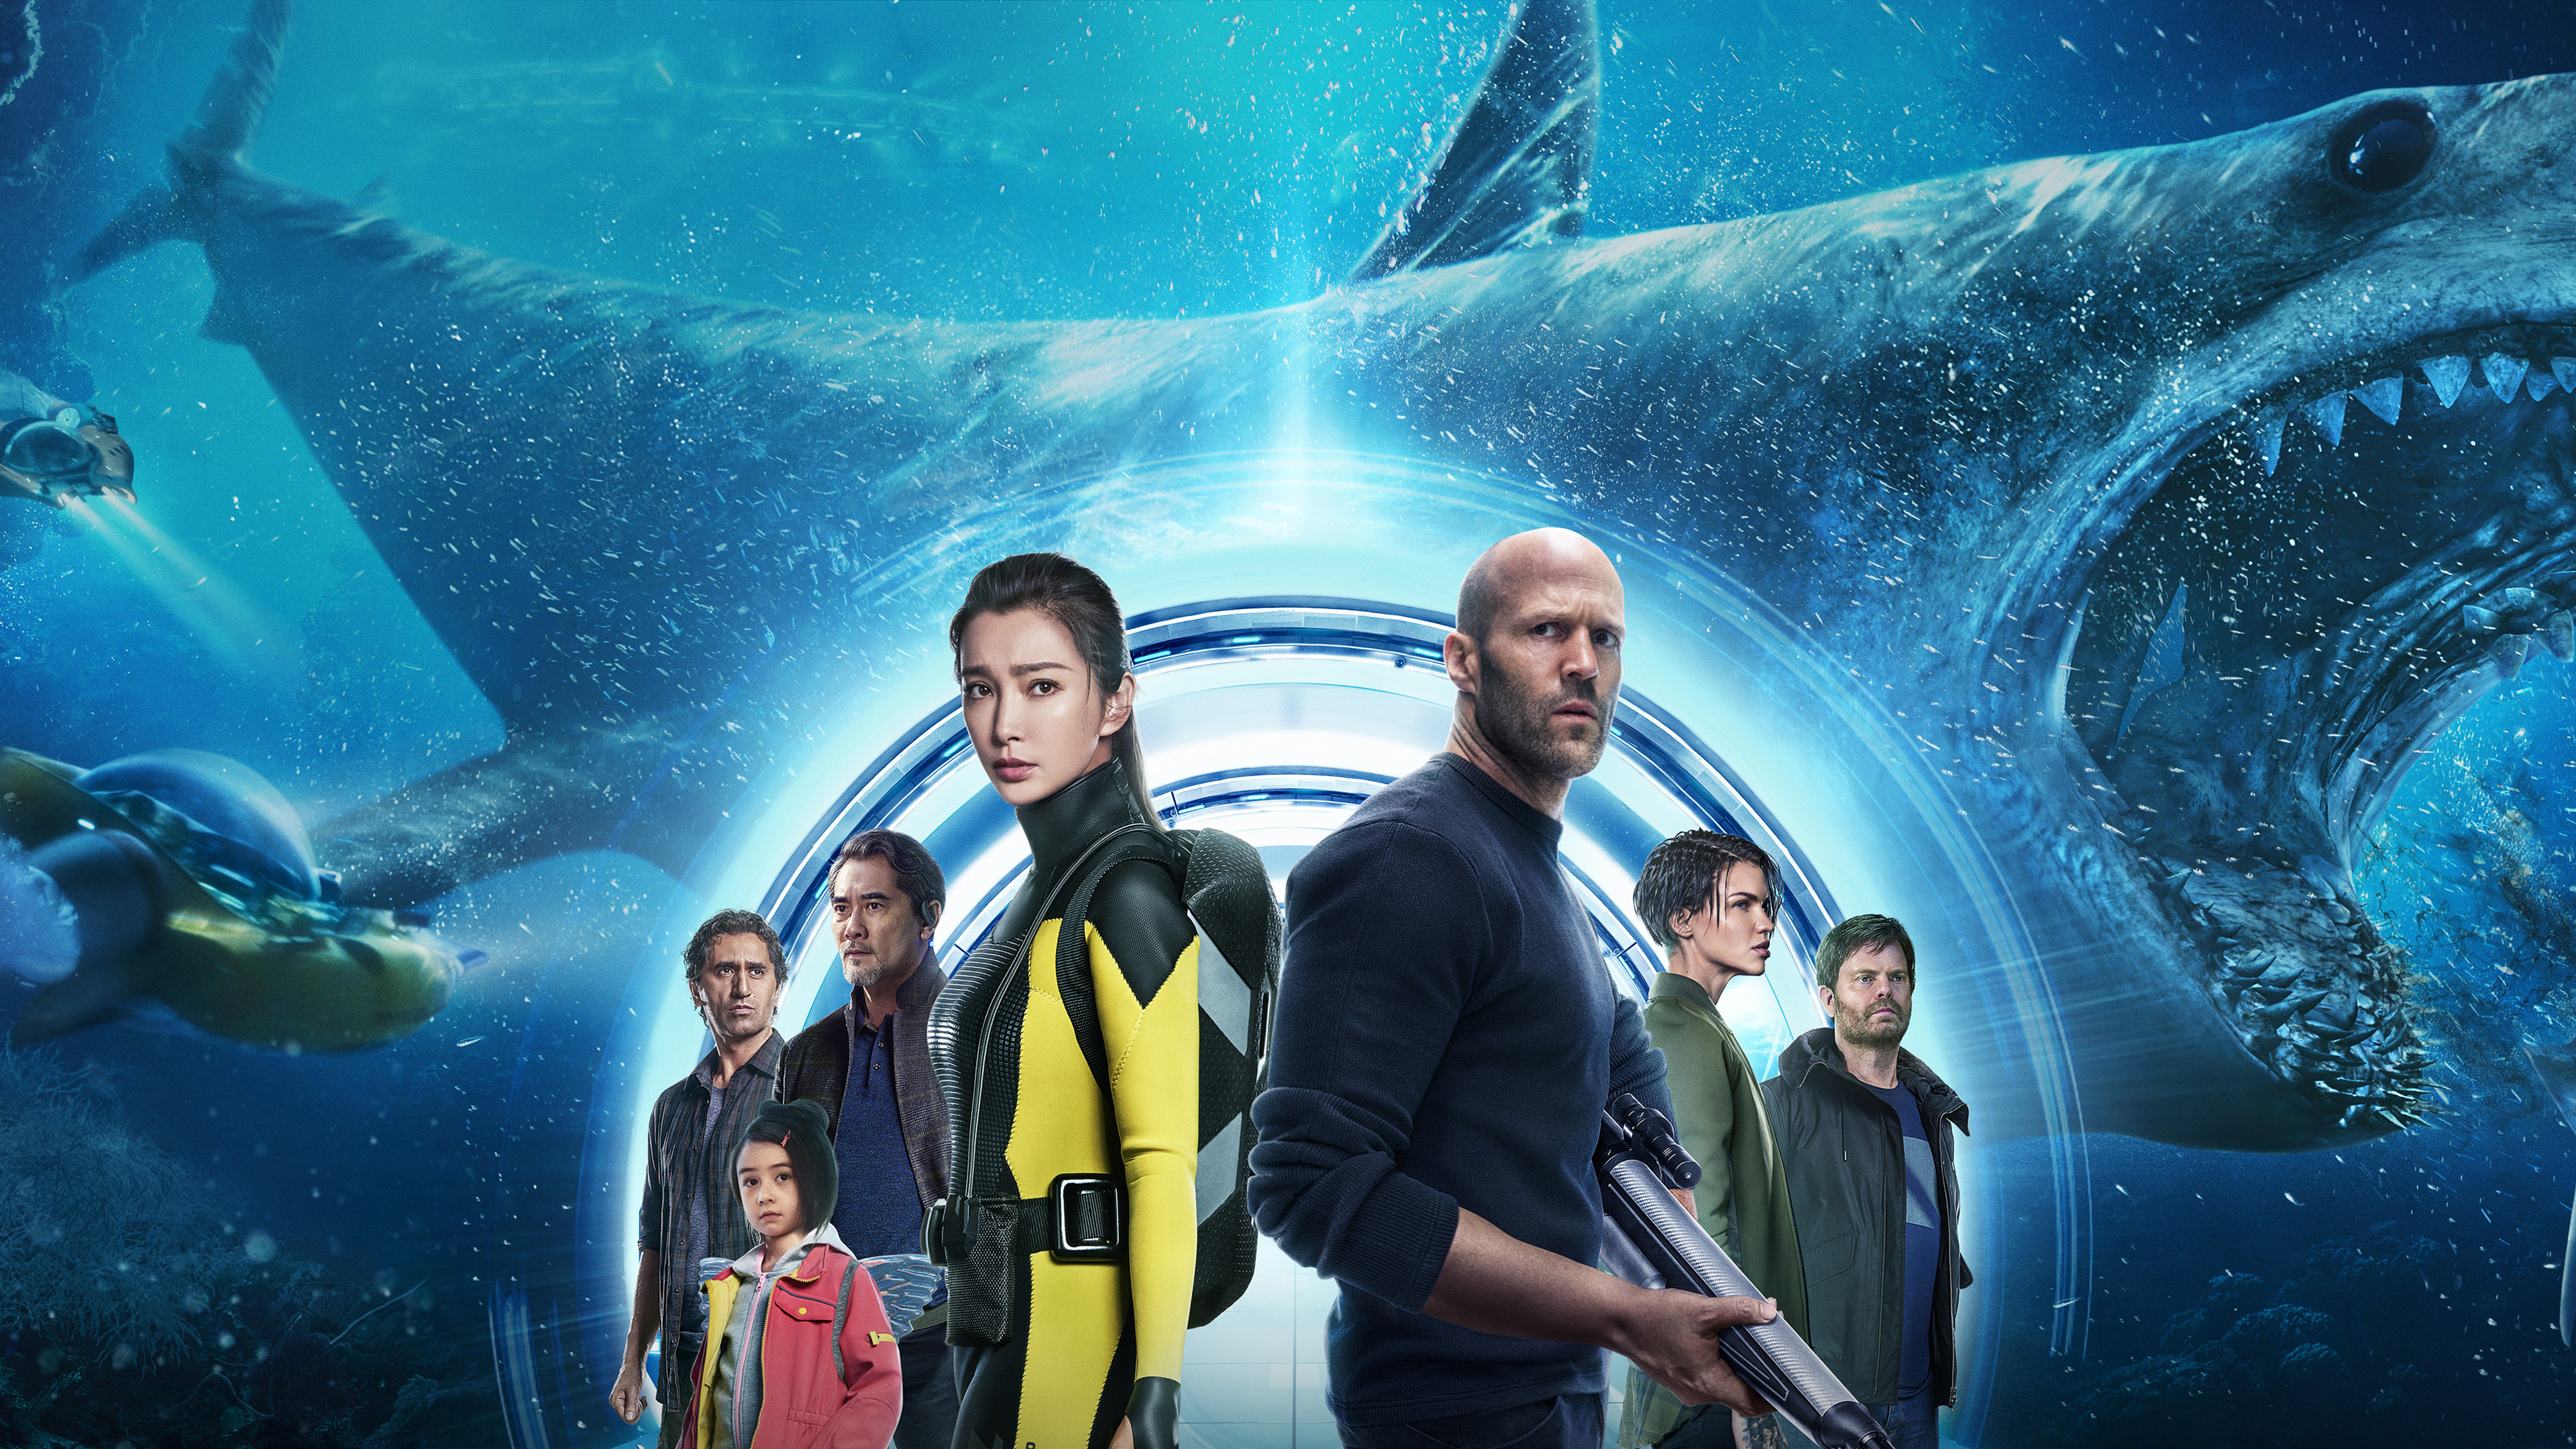 The Meg 2018 Movie 4k Wallpapers Wallpapers Hd